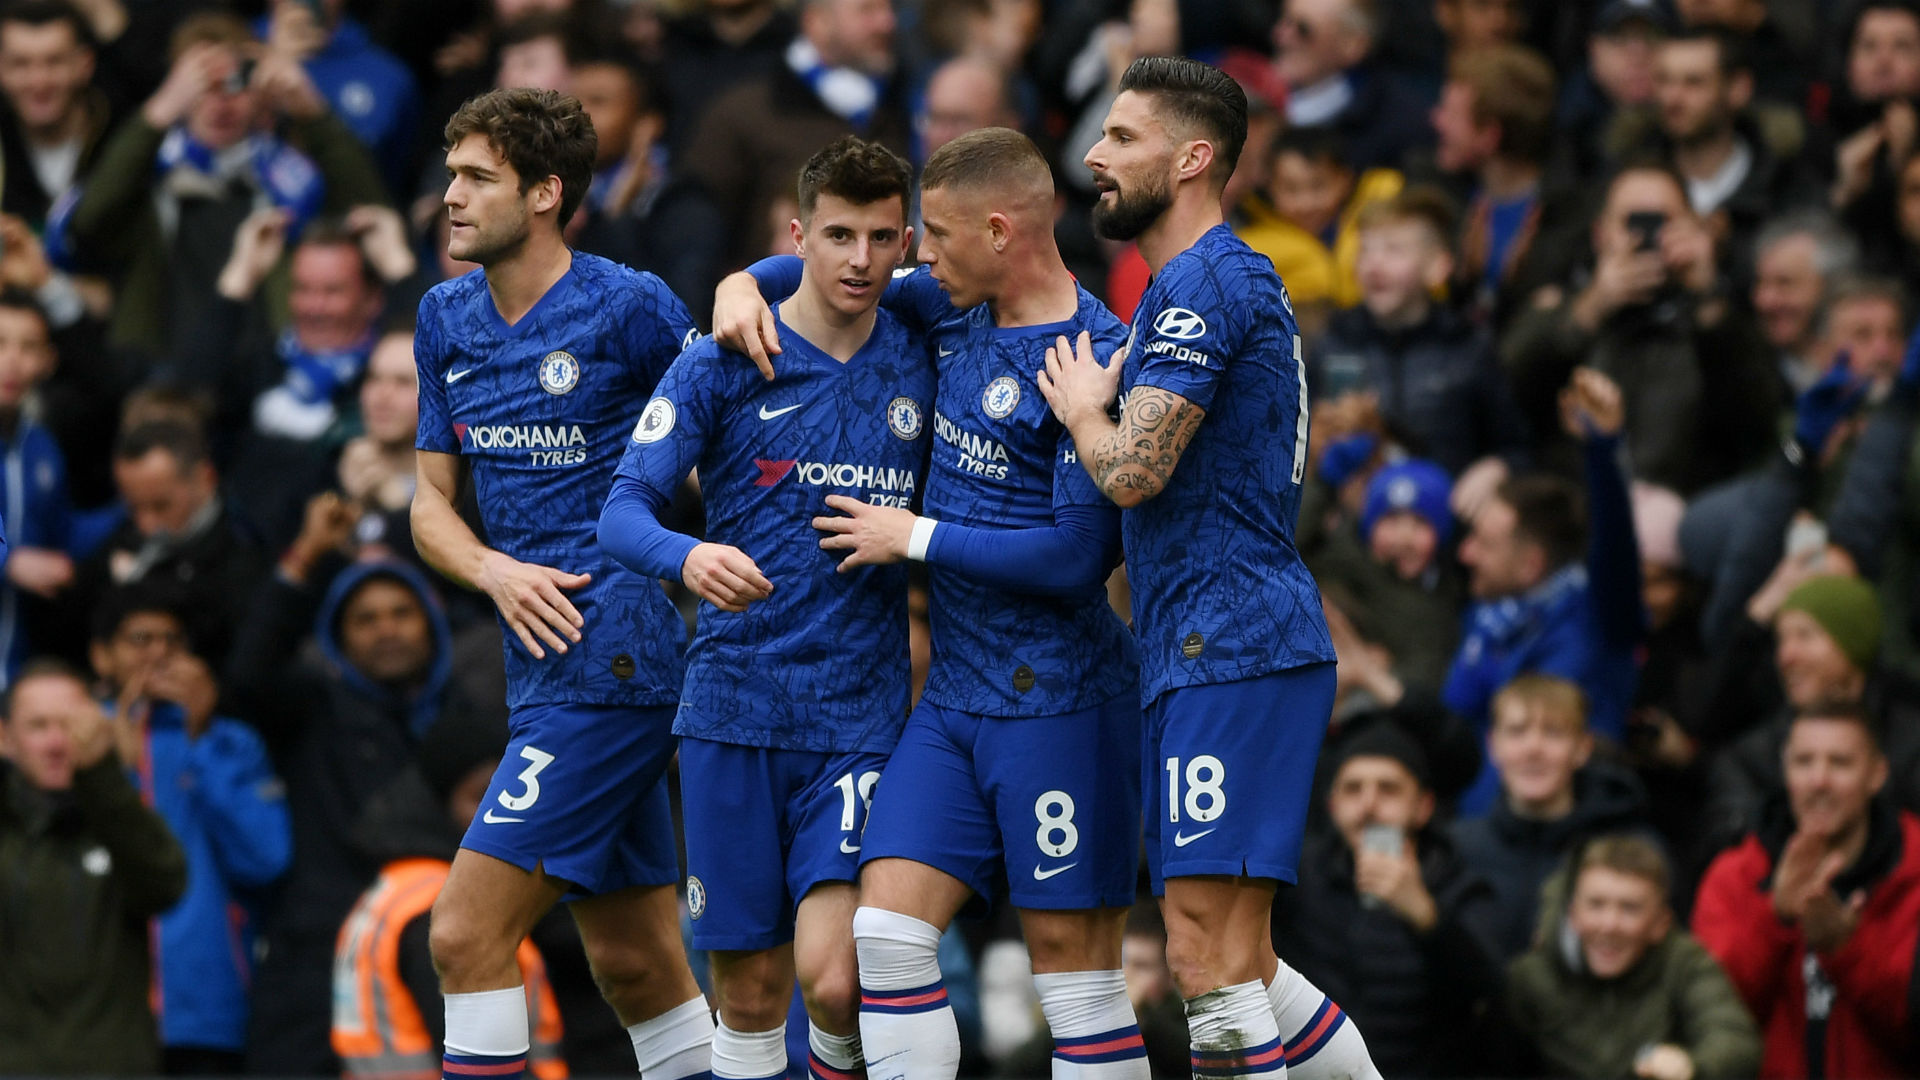 Lampard: I'd be a fool to say Chelsea will catch Liverpool and City very quickly